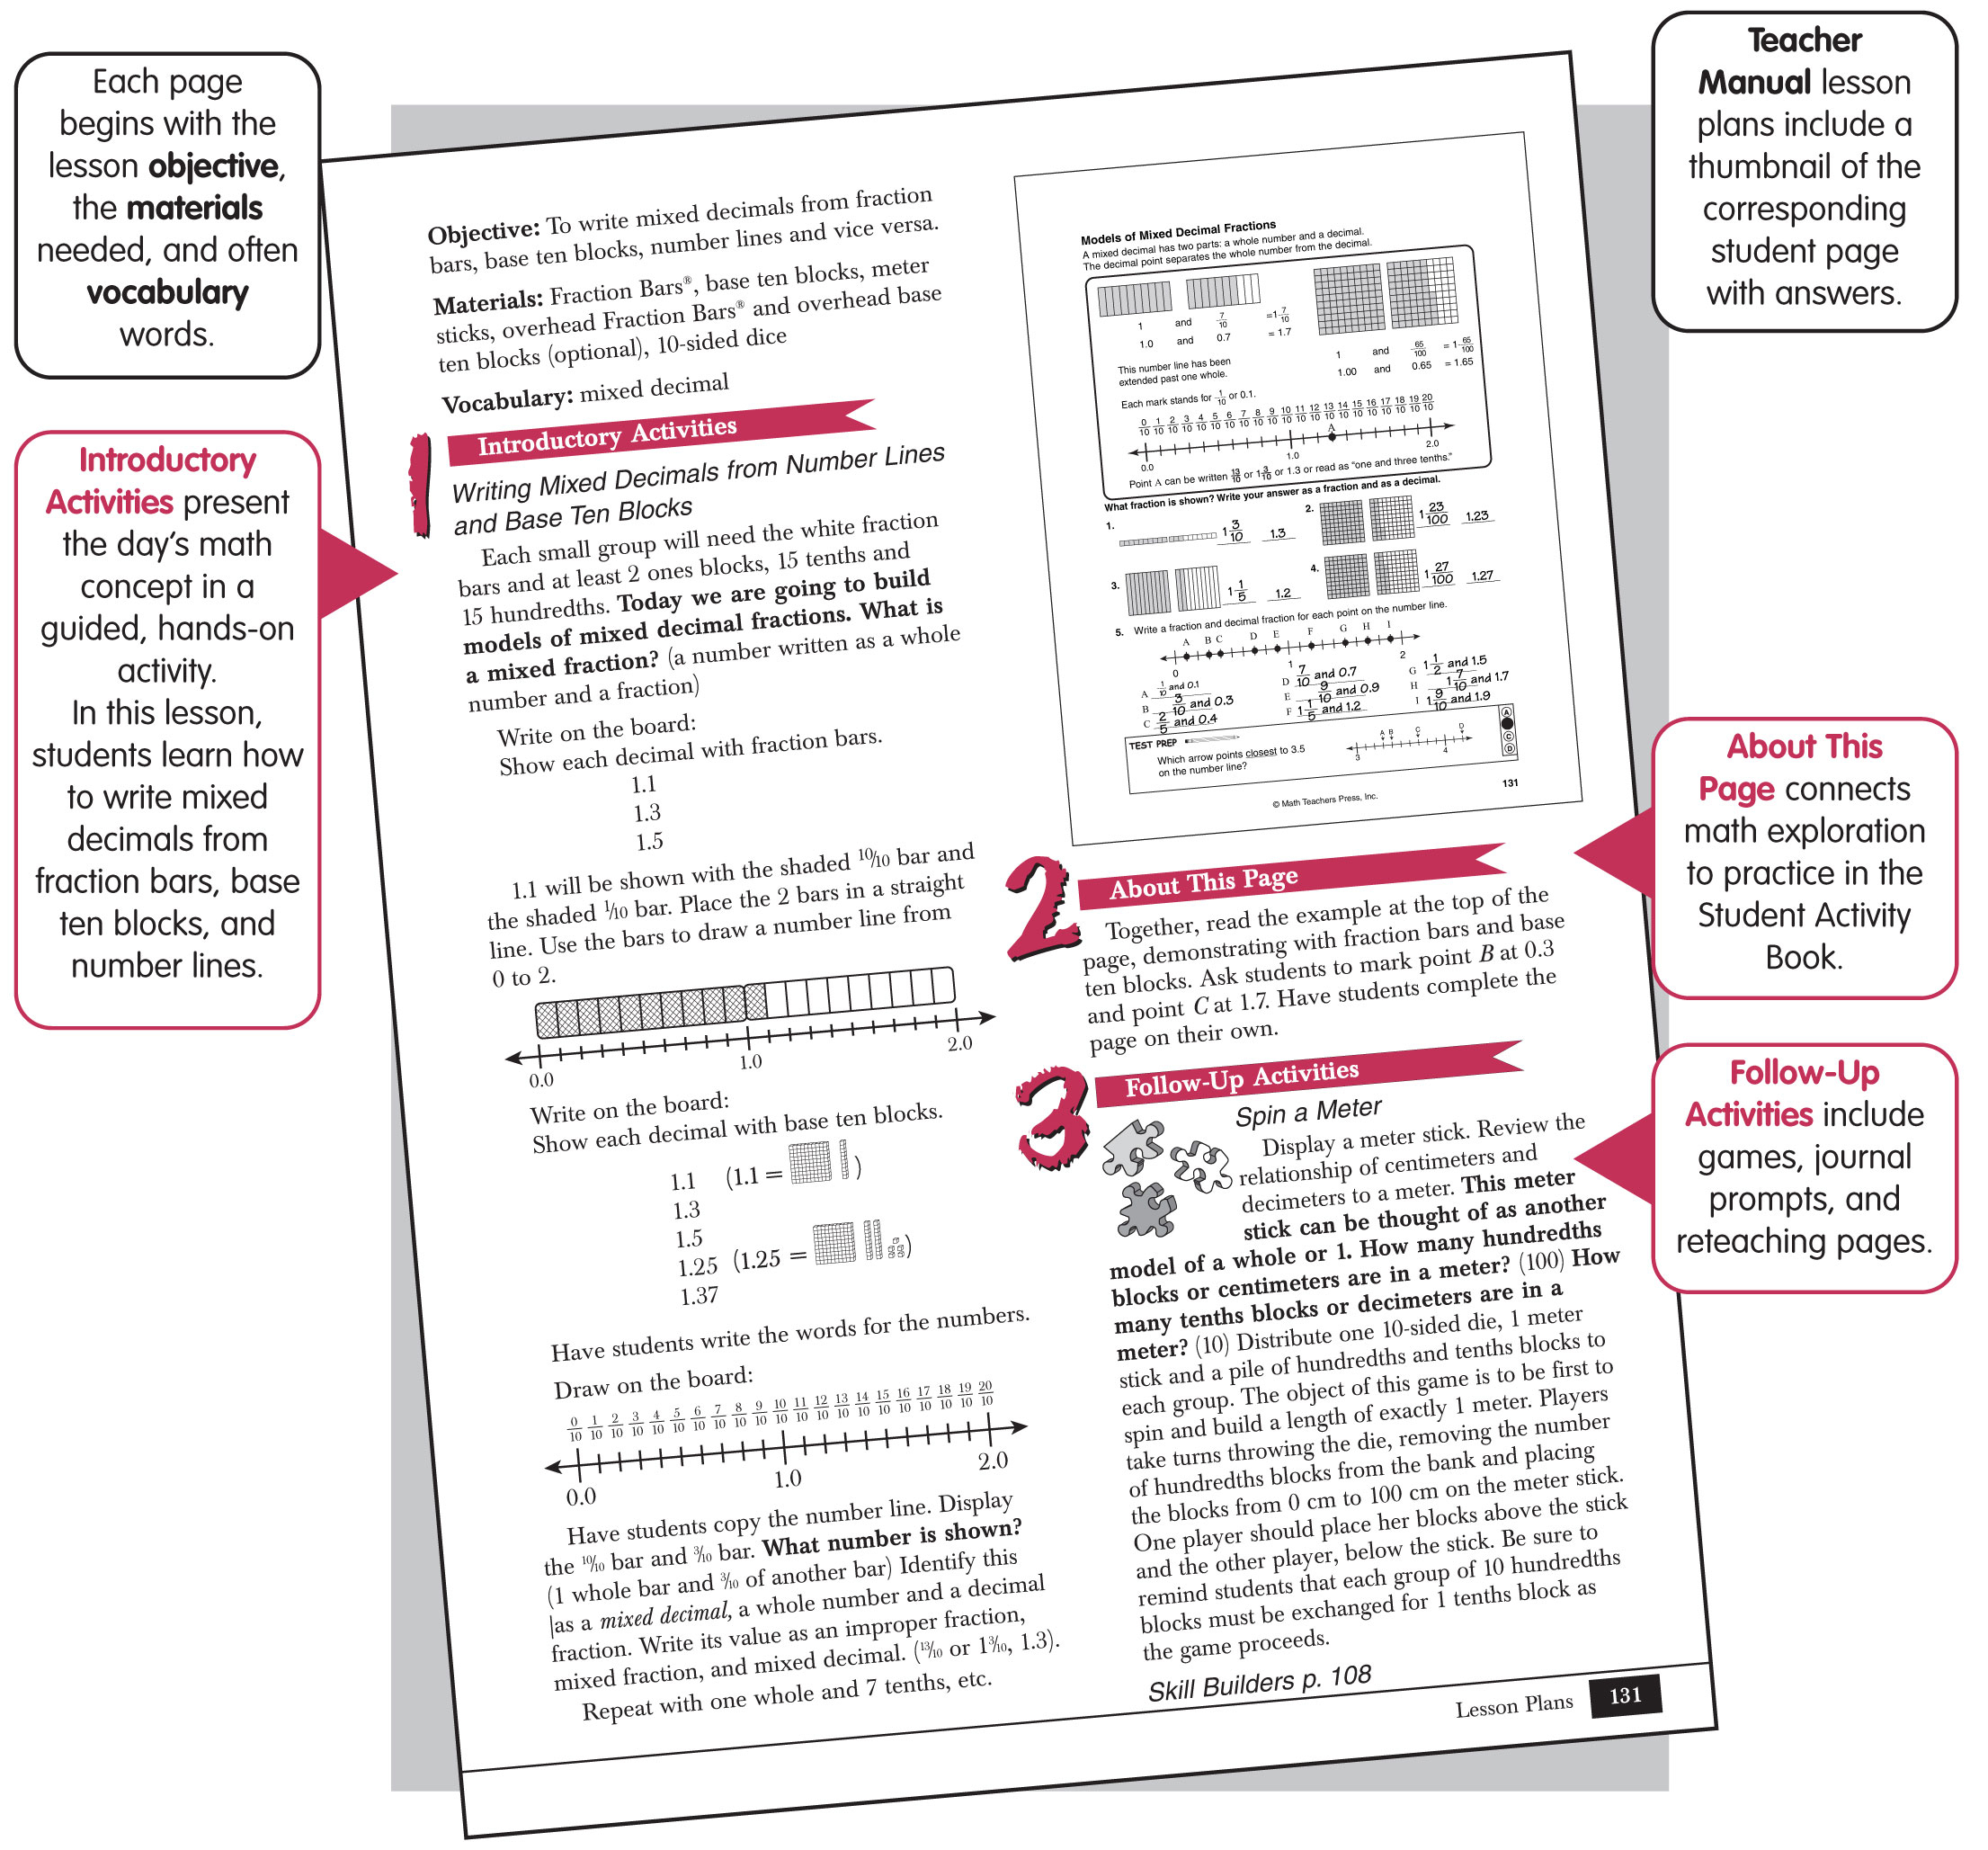 A Foundational Lesson Plan From Part A   Moving With Math